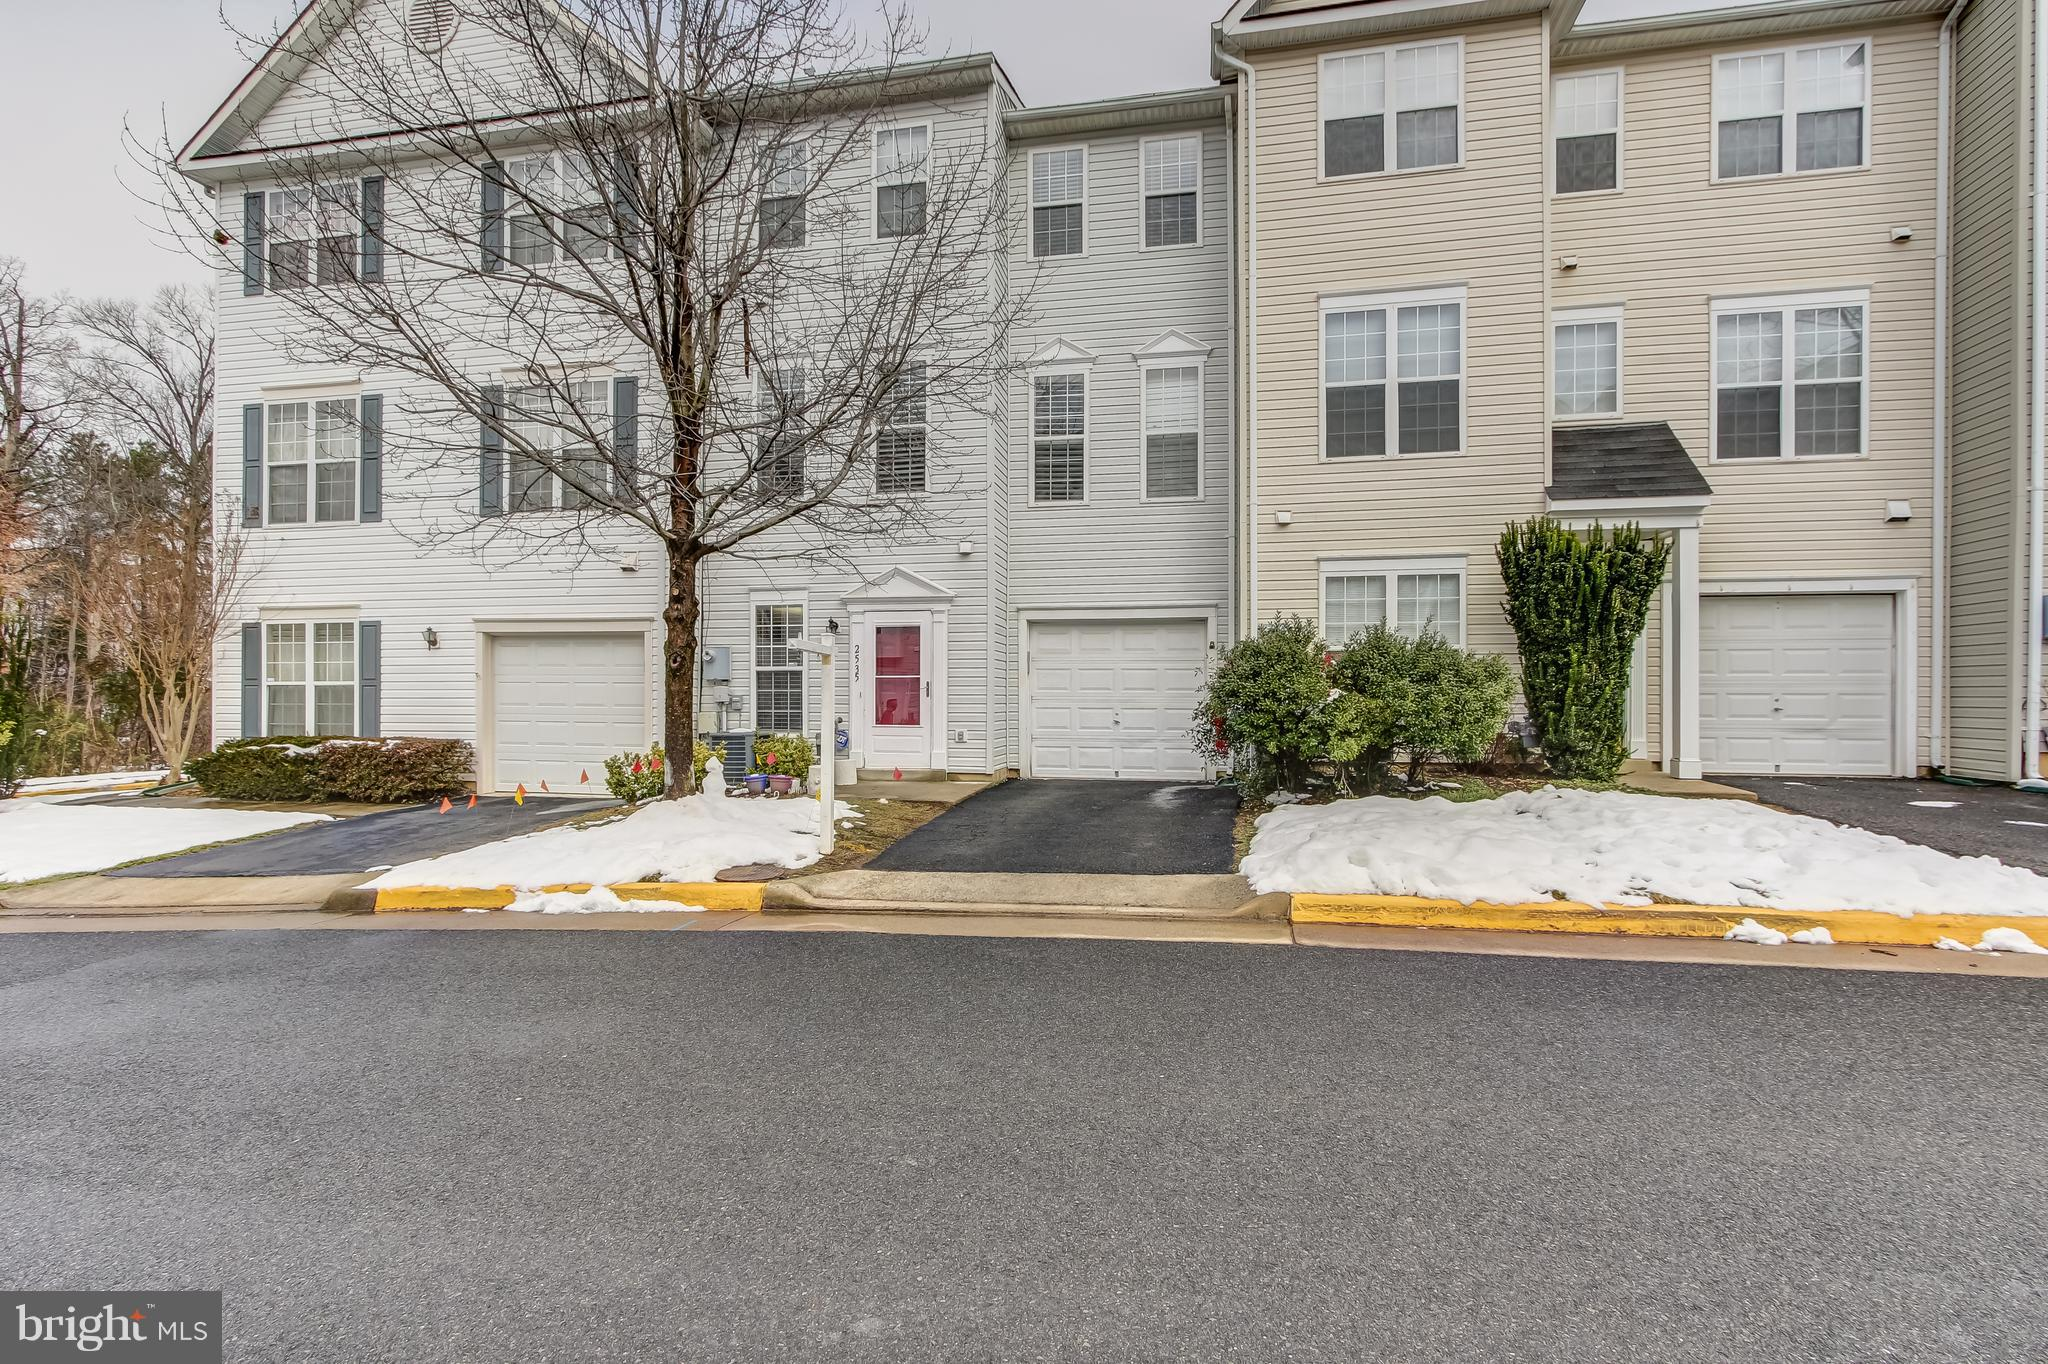 **MOVE-IN READY **BEAUTIFUL & BRIGHT TOWNHOME W/ TWO MASTER SUITES WITH WALK-IN CLOSETS AND LARGE BATHROOMS. THIS 3 LVL TOWNHOME IS LOCATED IN SOUGHT AFTER MCNAIRS FARMS COMMUNITY AND IS WITHIN MINUTES FROM THE NEW SILVER LINE METRO STOPS**UPGRADES GALORE LARGE KITCHEN, LIVING & DINING ROOM SPACE ON MAIN LEVEL PERFECT FOR ENTERTAINING**STUNNING FIREPLACE**FRESH PAINT**NEW LAMINATE FLOORING AND  CUSTOM PLANTATION BLINDS.**NEW WASHER/DRYER WHICH CONVEYS**ATTIC INSULATION**THE TOWNHOME HAS ATTACHED 1 CAR GARAGE WITH REMOTES/OPENER. PLENTY OF STREET AND PERMIT PARKING AVAILABLE. **PREMIERE FAIRFAX COUNTY SCHOOLING DISTRICT**CLOSE TO MAJOR SHOPPING, RESTAURANTS, AIRPORT, FUTURE METRO, RESTON TOWN CENTER, DULLES HI-TECH CORRIDOR AND MORE. THIS IS A MUST SEE**